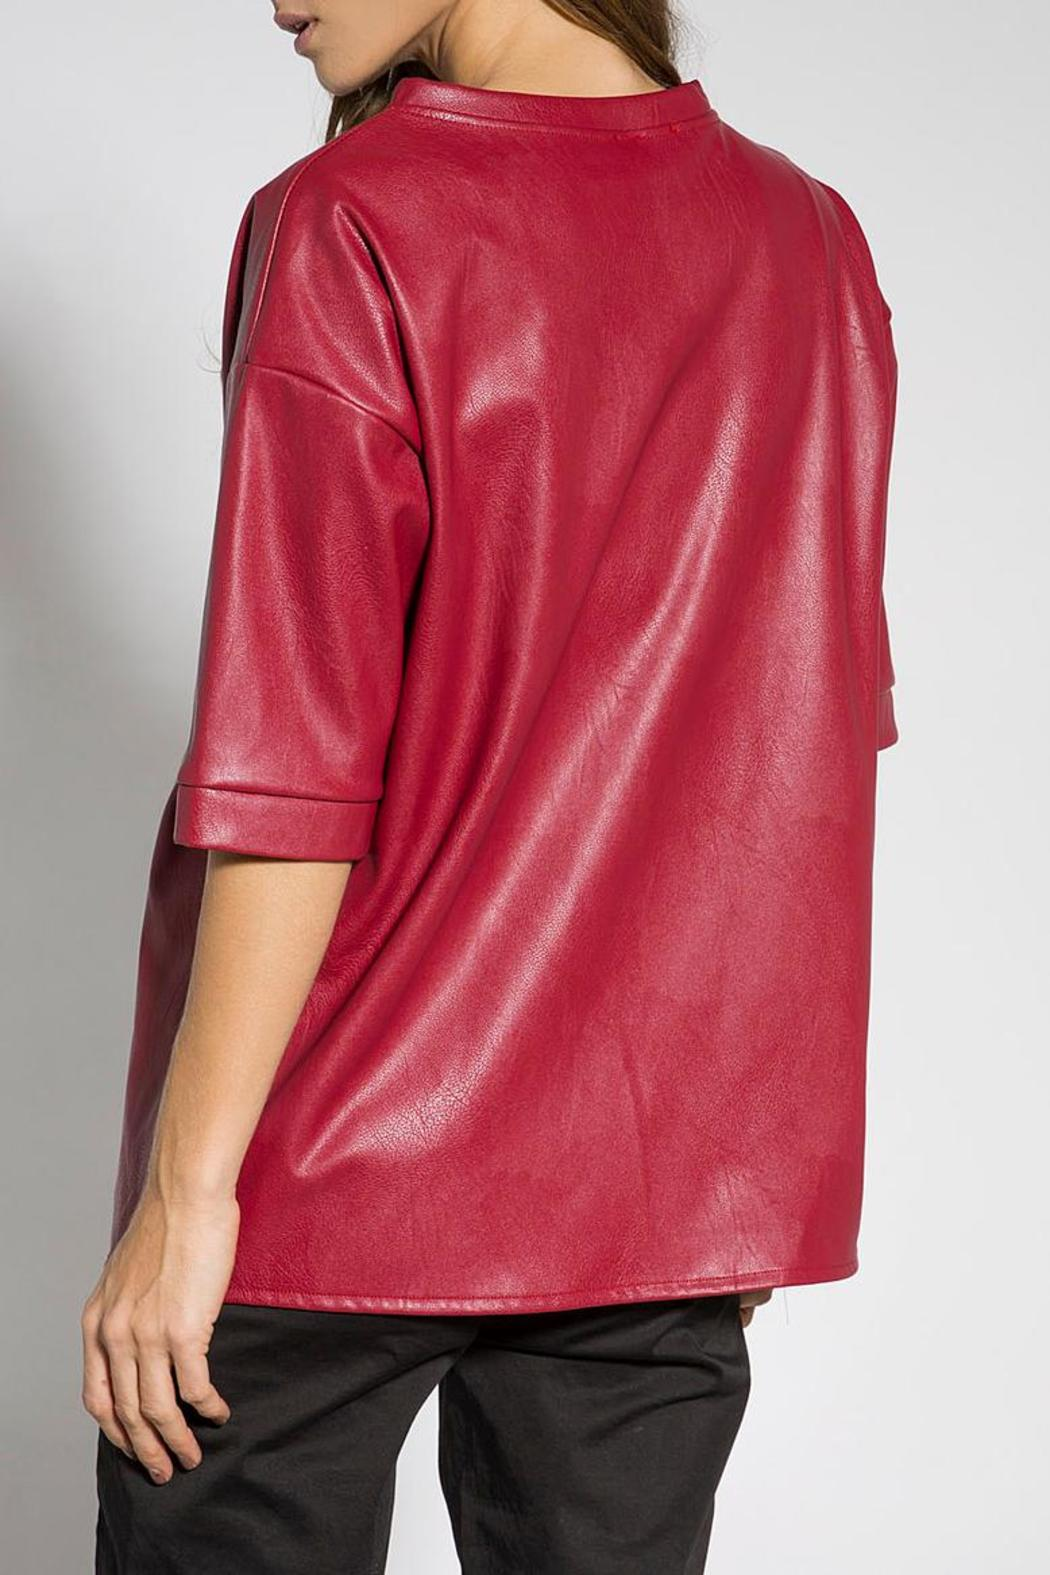 5c3f76acaf9c01 B mine Faux Leather Blouse from Tel Aviv by Bmine — Shoptiques